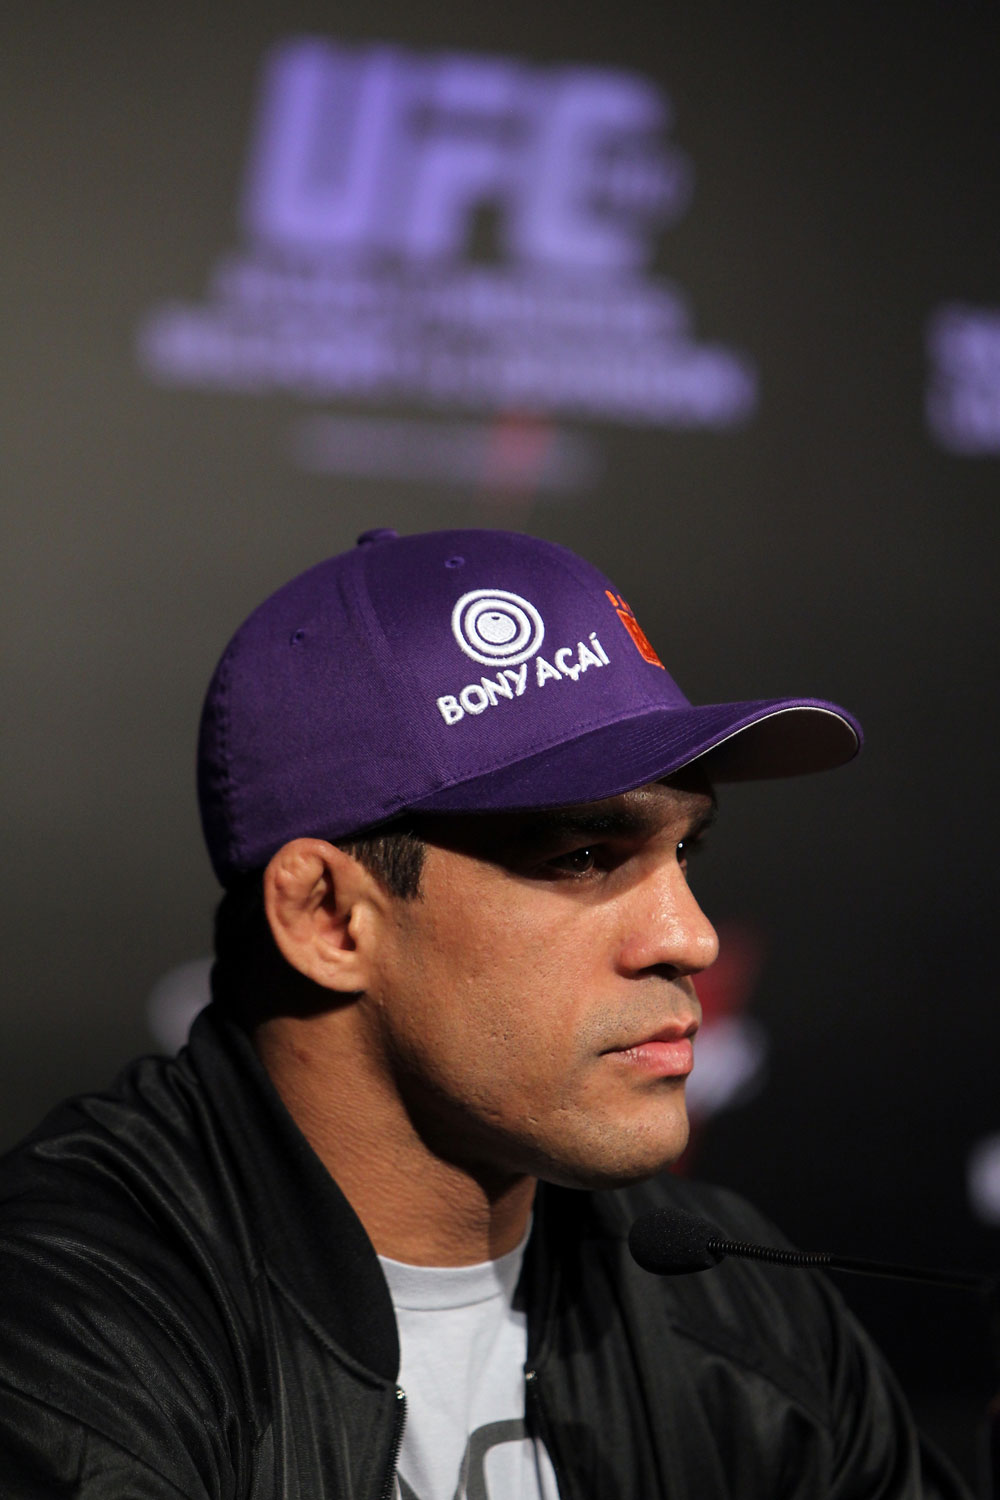 RIO DE JANEIRO, BRAZIL - JANUARY 12:  Vitor Belfort attends the final UFC 142 pre-fight press conference at the Copacabana Palace Hotel on January 12, 2012 in Rio de Janeiro, Brazil.  (Photo by Josh Hedges/Zuffa LLC/Zuffa LLC via Getty Images)